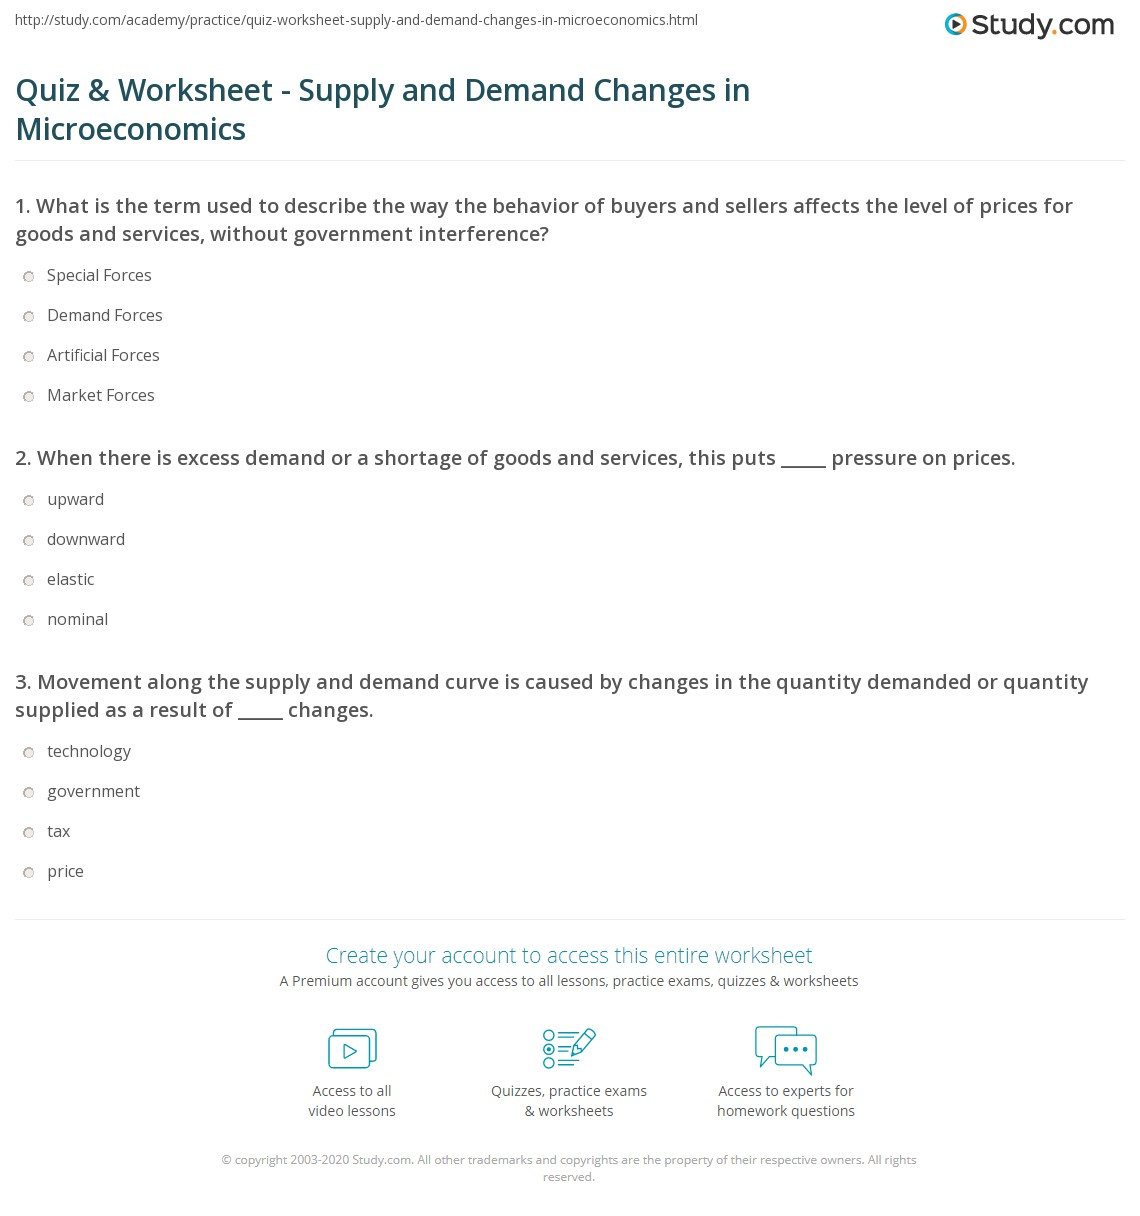 quiz worksheet supply and demand changes in microeconomics  print causes of supply and demand changes in microeconomics worksheet